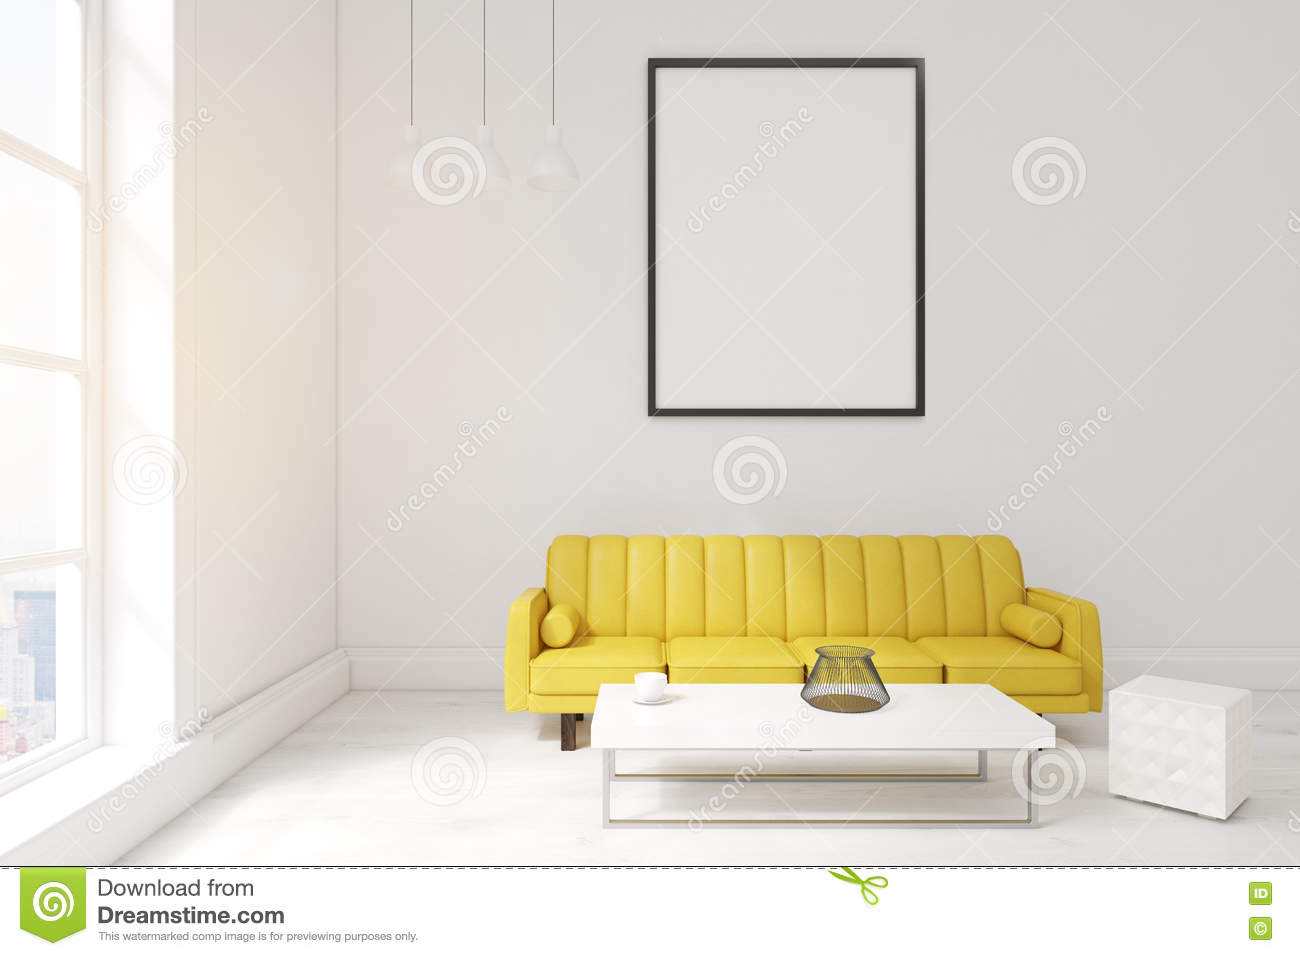 Living Room With Poster, Yellow Sofa And A Coffee Table Stock ...